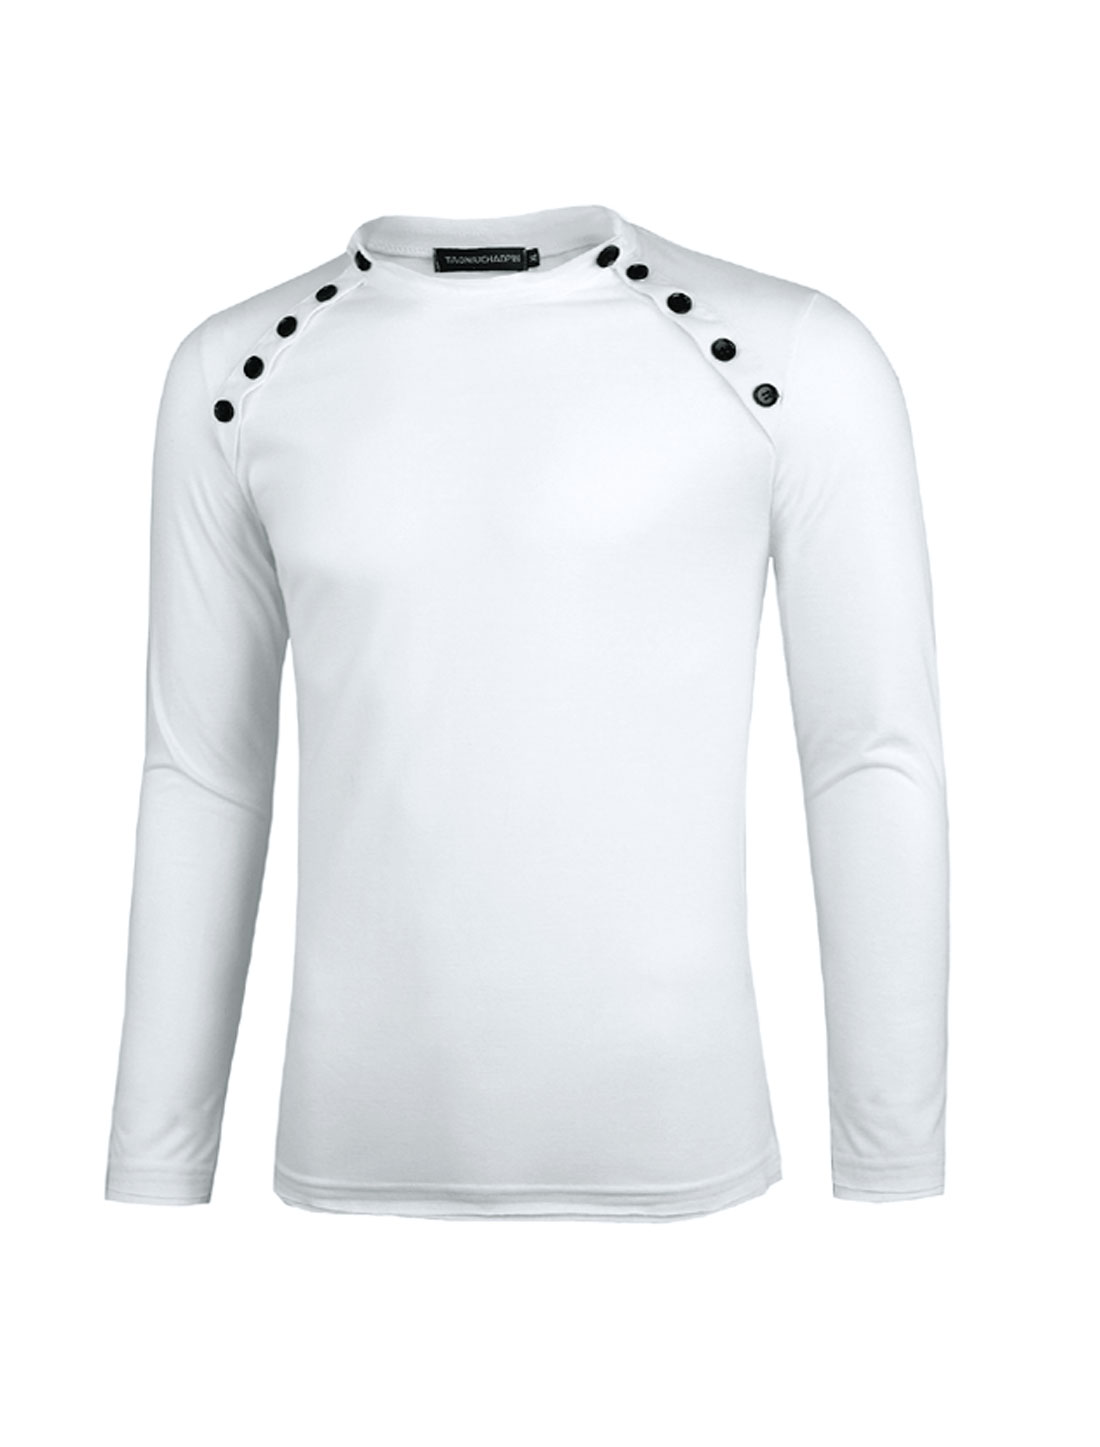 Man Long Sleeves Pullover Slim Fit Casual White Shirts S